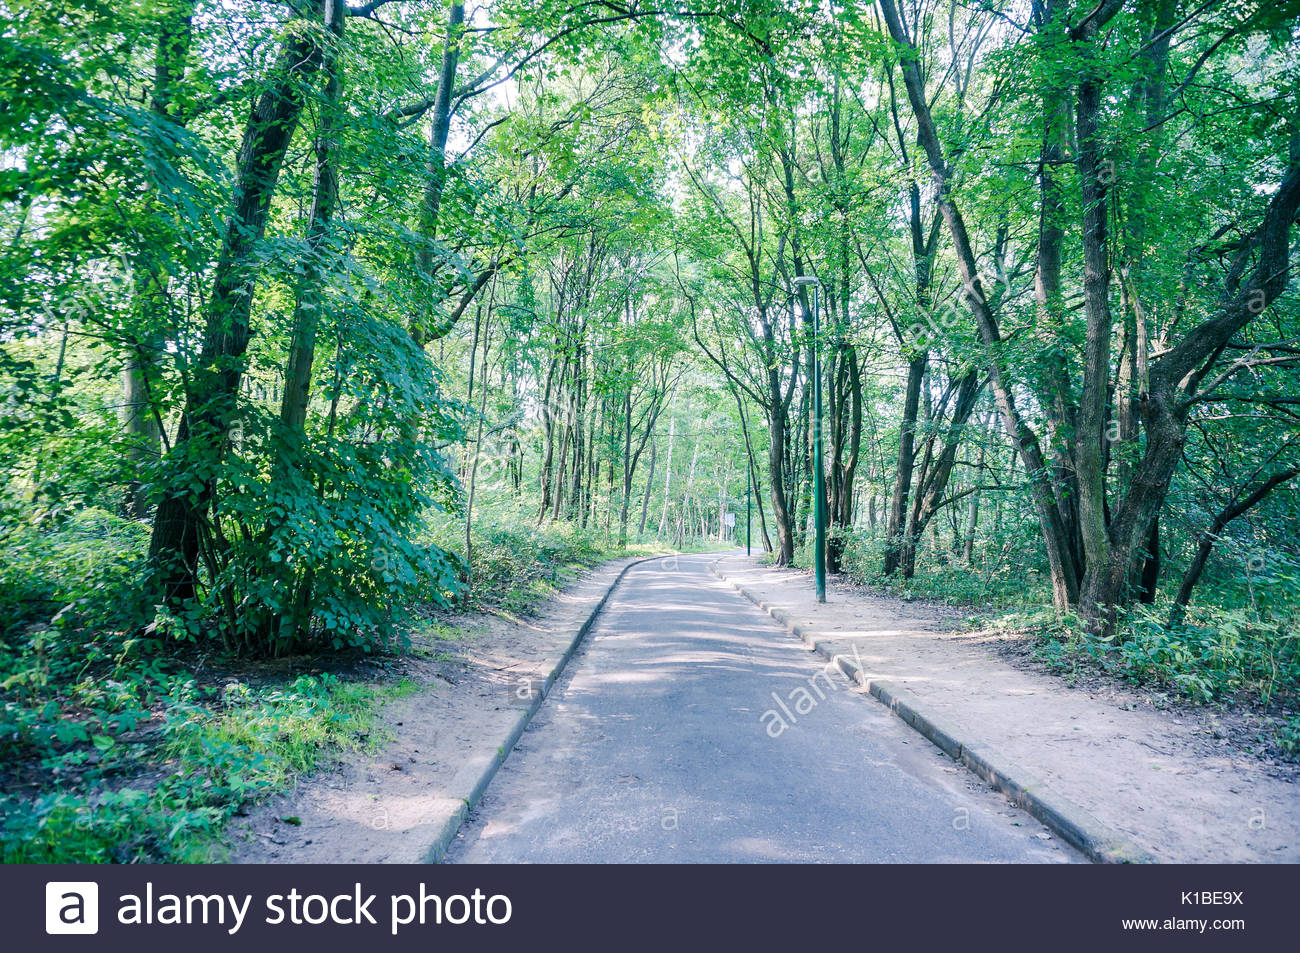 Footpath along a green forest in rich and cool colors - Stock Image